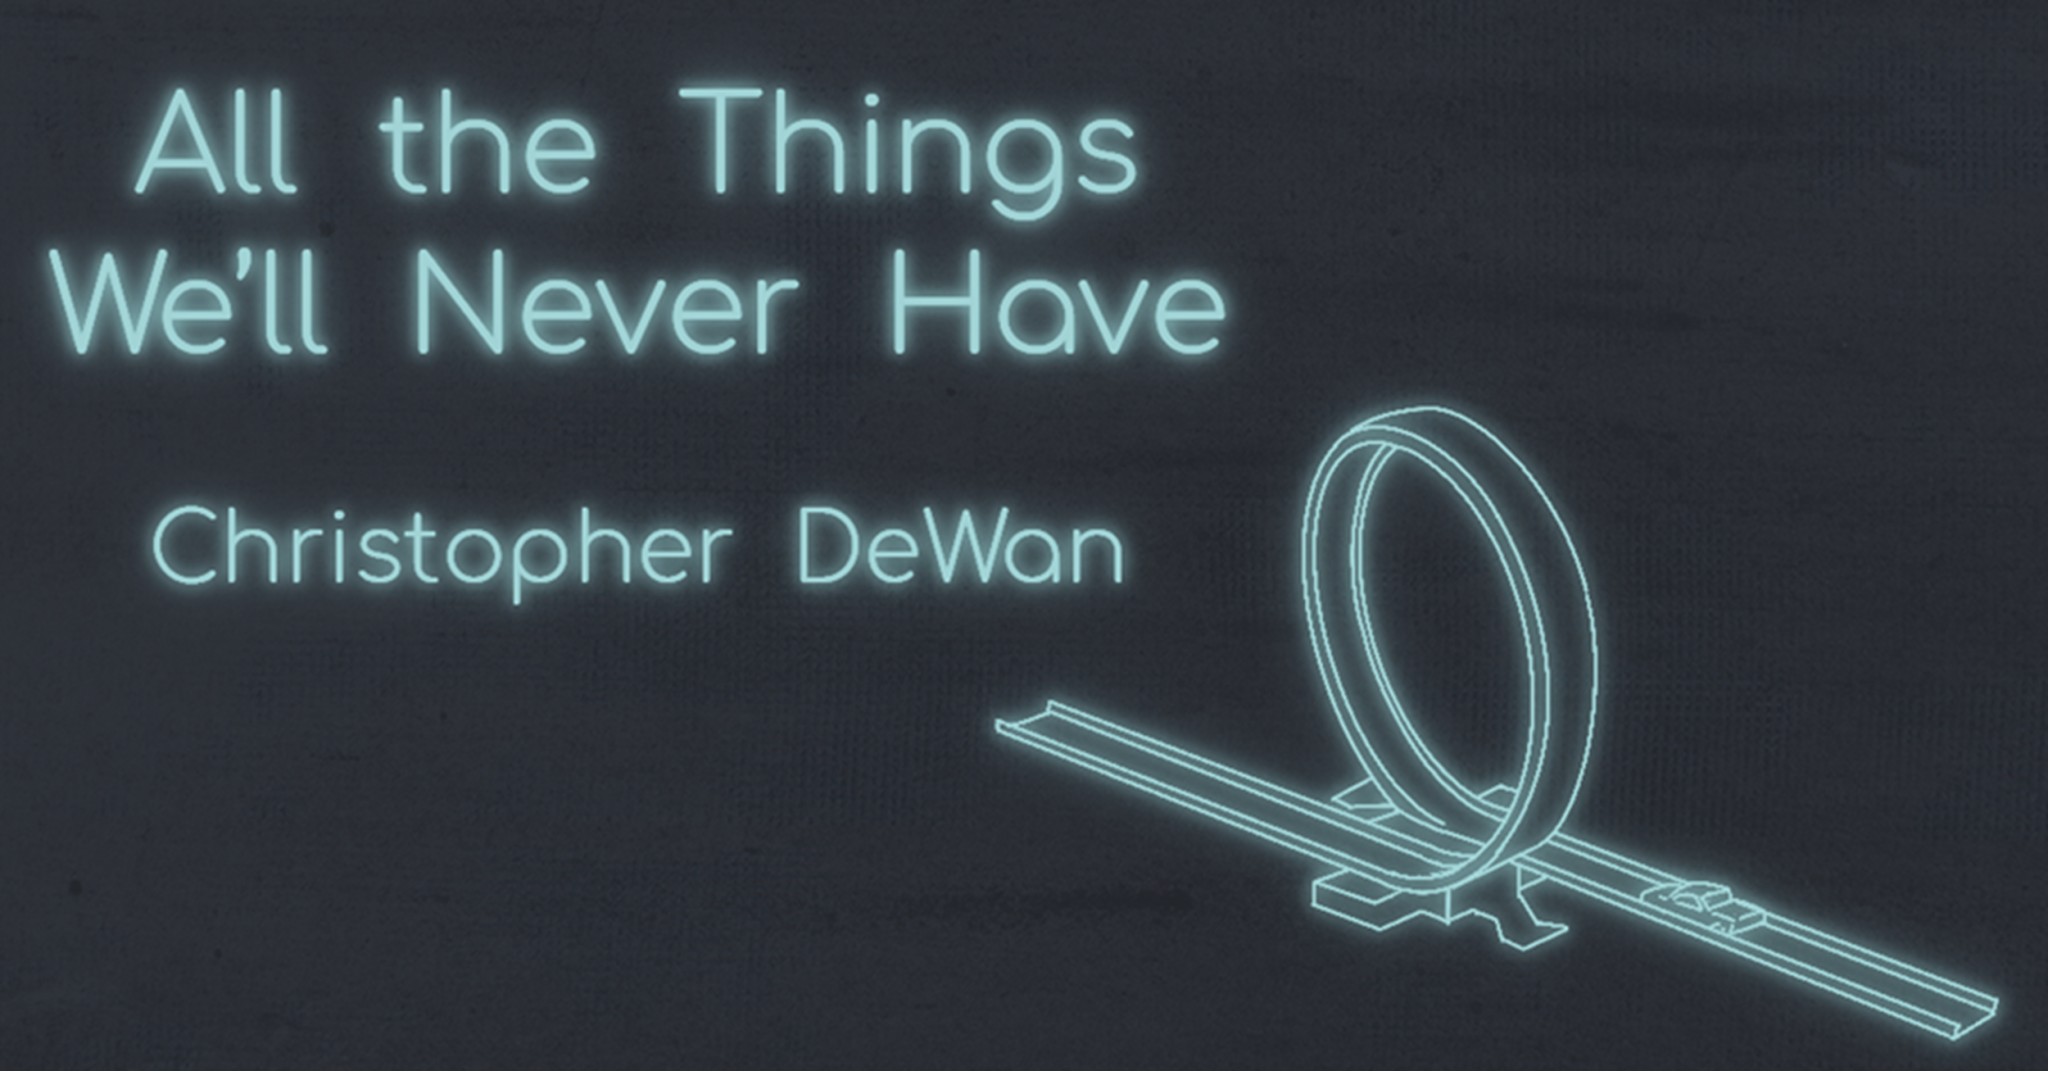 ALL THE THINGS WE'LL NEVER HAVE by Christopher DeWan